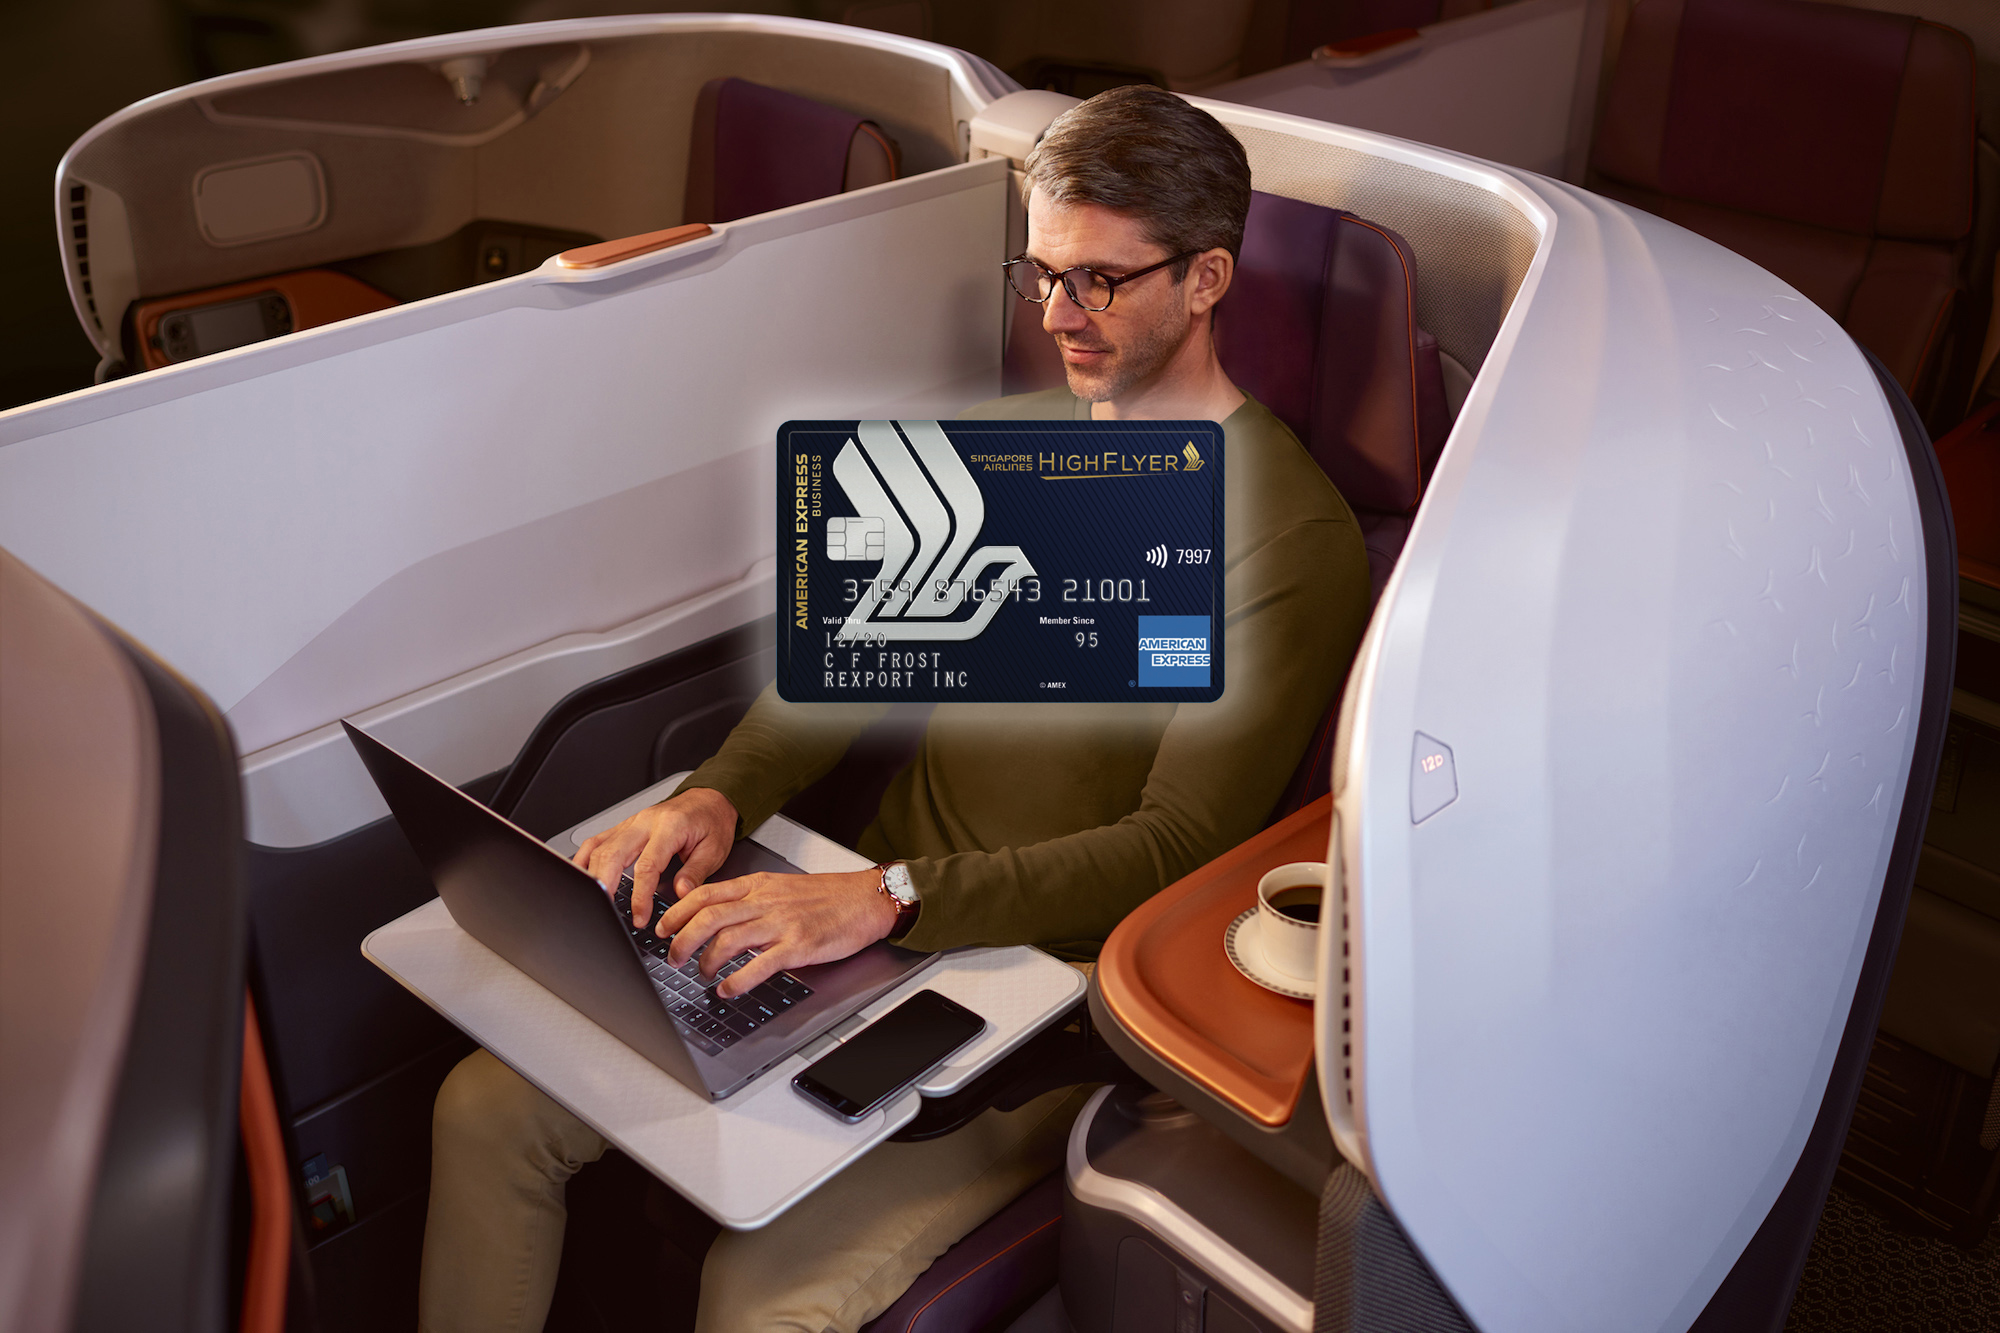 New Amex Singapore Airlines Business Credit Card launched